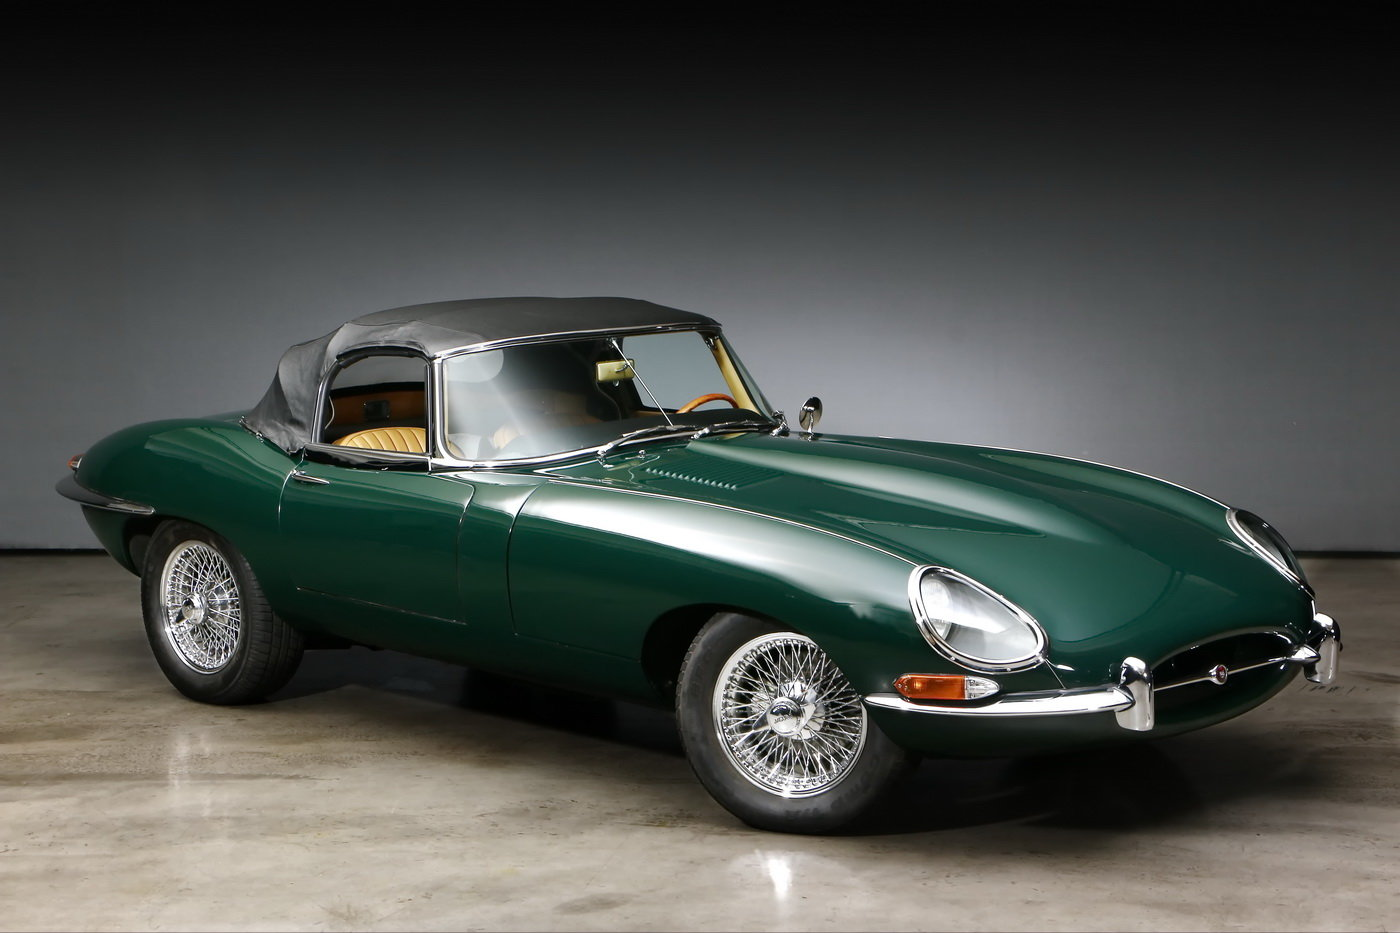 1965 Jaguar E-Type 1 Series 4.2 ltr Roadster For Sale (picture 4 of 6)